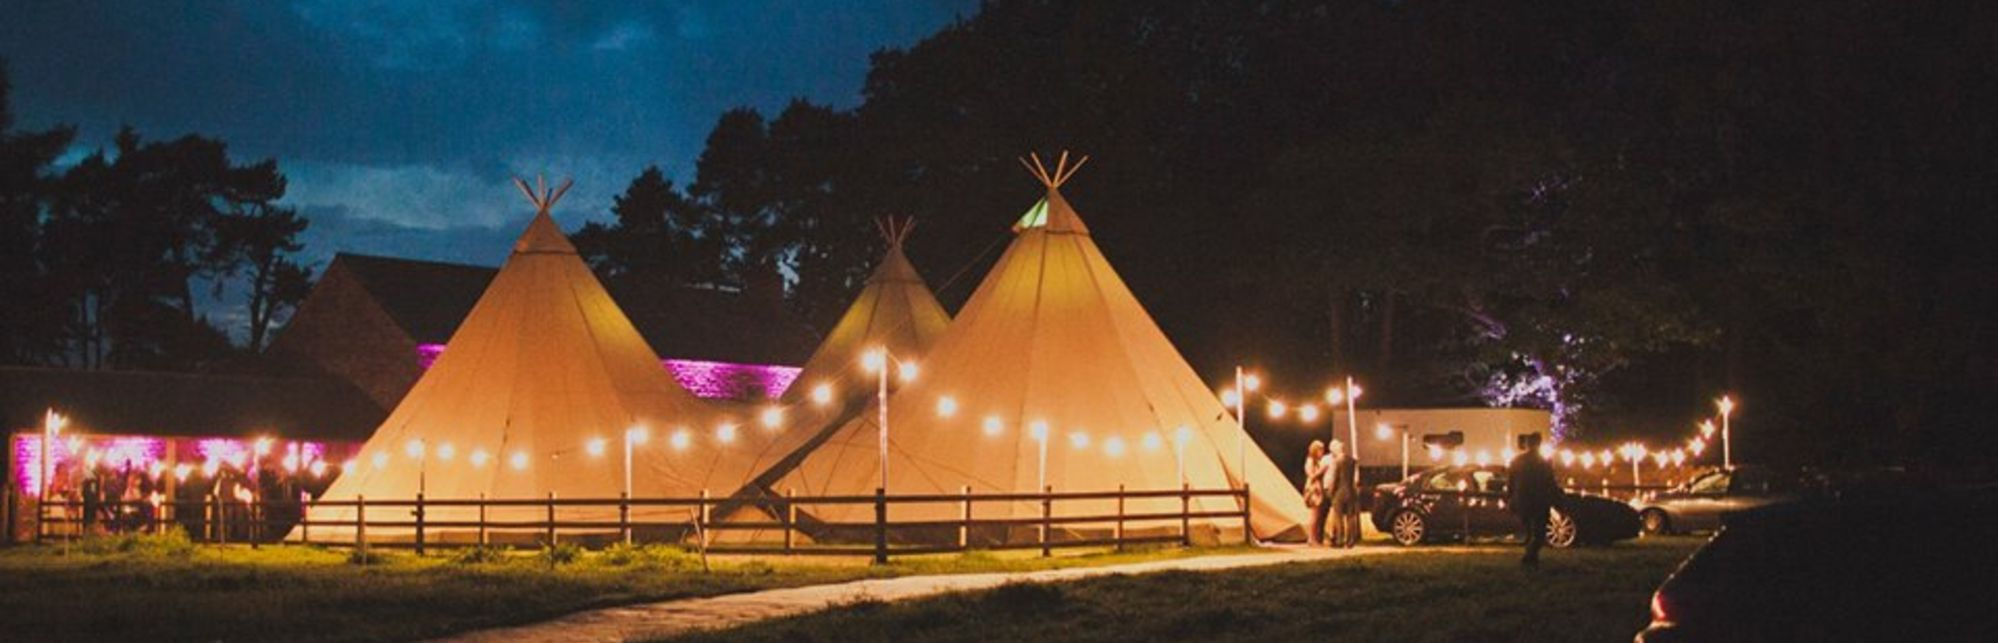 Tipis with lights outside at night